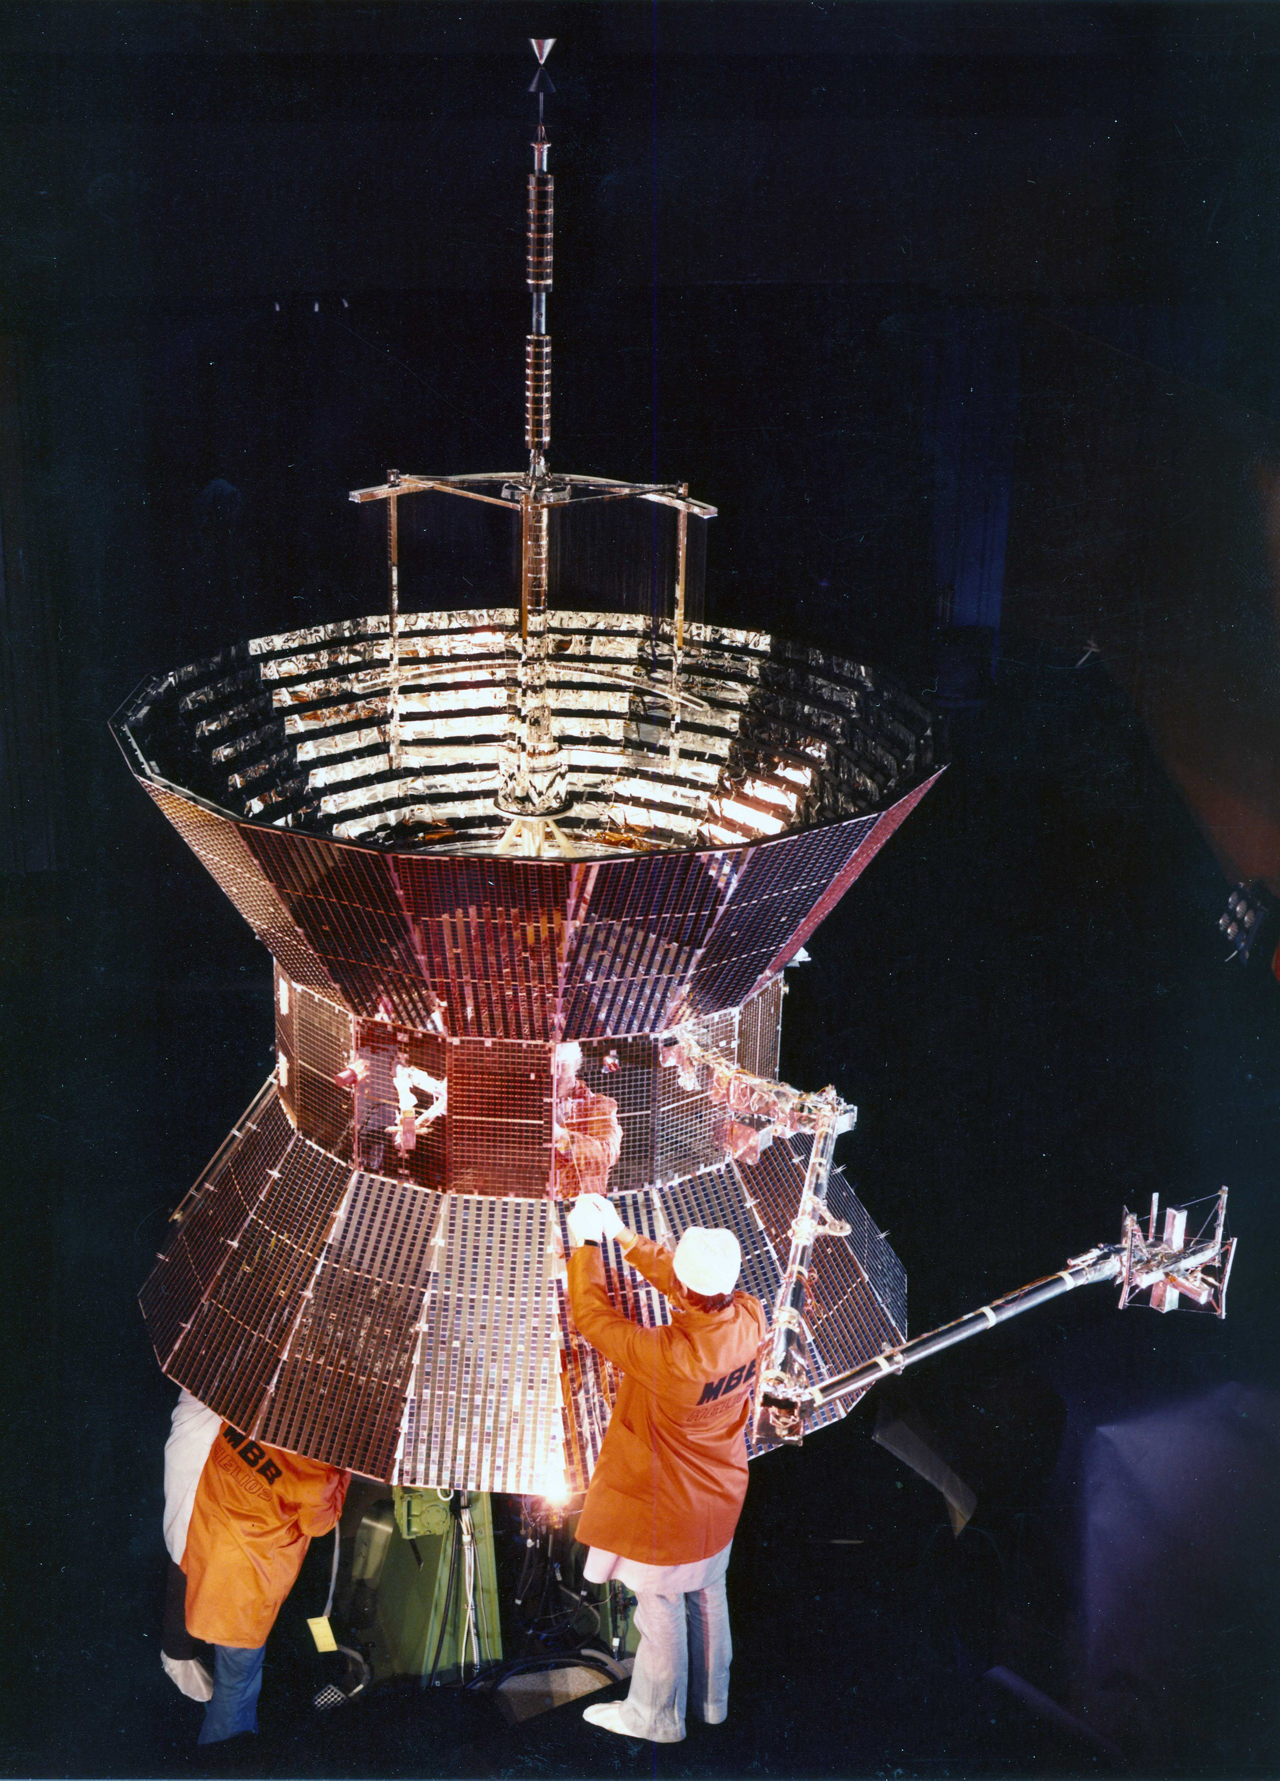 The Helios-A satellite, built by Airbus predecessor Messerschmitt-Bölkow-Blohm, is readied for launch.